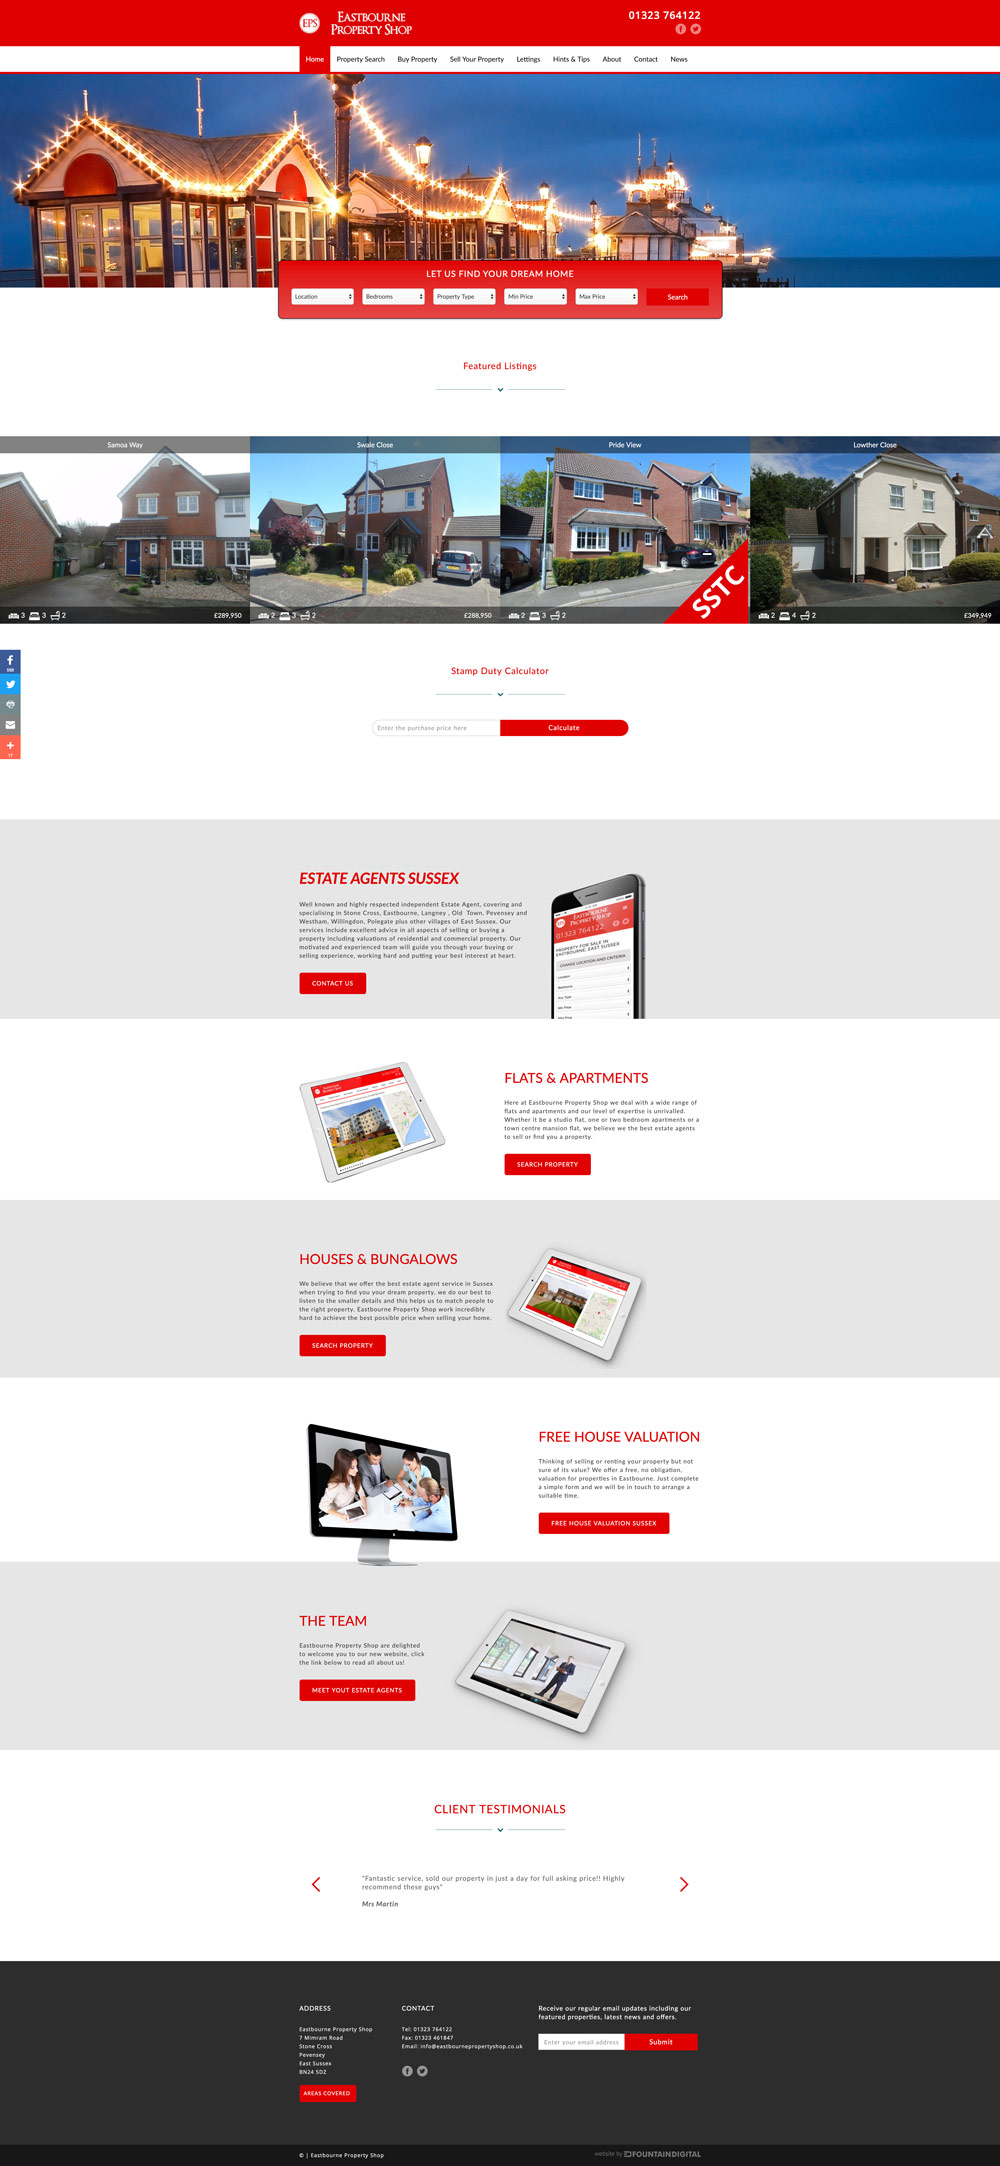 desktop image of website design